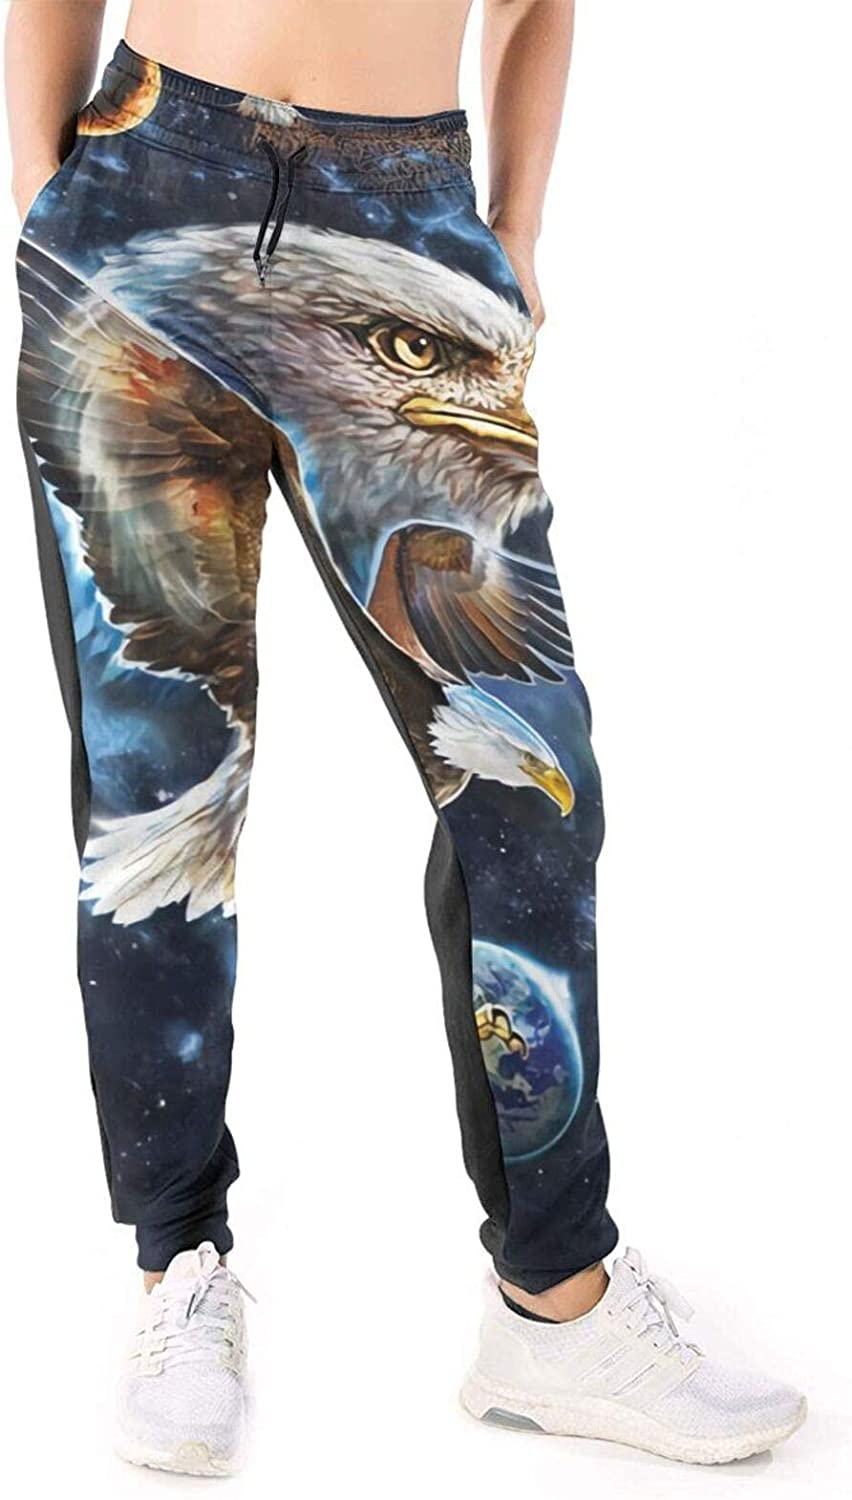 Women Joggers Pants Galaxy Ea-Gle Planet Abstract Moon Athletic Sweatpants with Pockets Casual Trousers Baggy